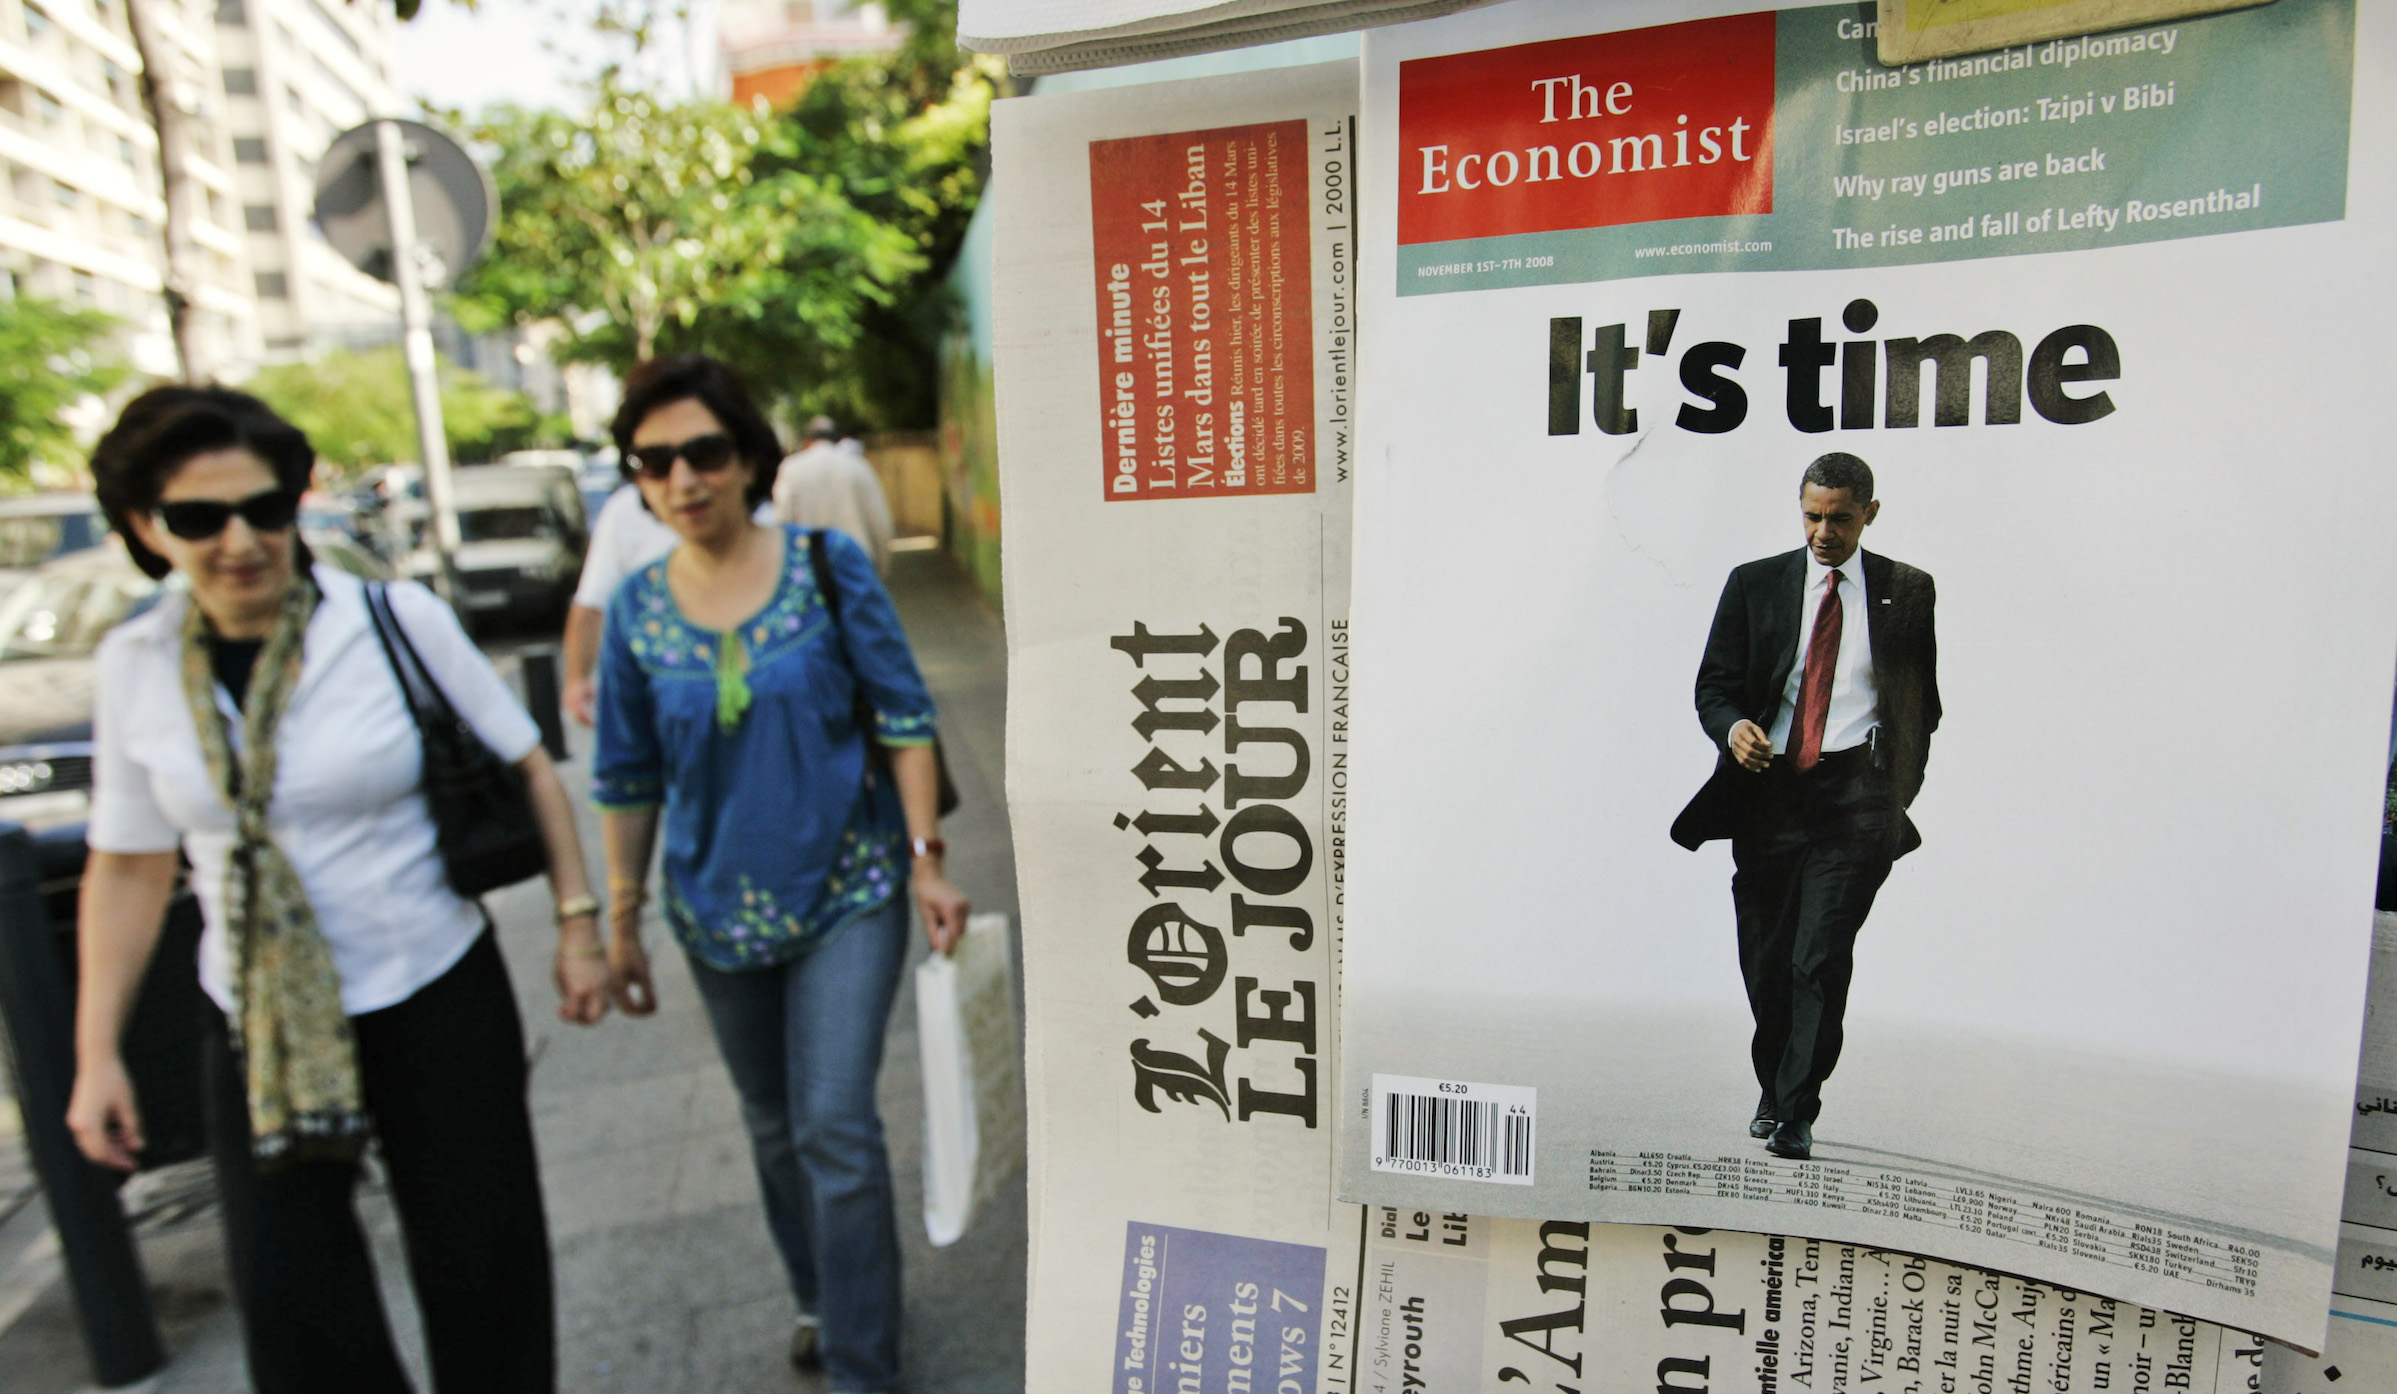 U.S. Presidential candidate Sen. Barack Obama is seen on the cover of The Economist magazine, on display at a kiosk in the Hamra district, Beirut, Lebanon, Tuesday, Nov. 4, 2008. The race for the White House is attracting huge media coverage in Lebanon, as the long race for the White House nears its end on Tuesday. (AP Photo/Hussein Malla)